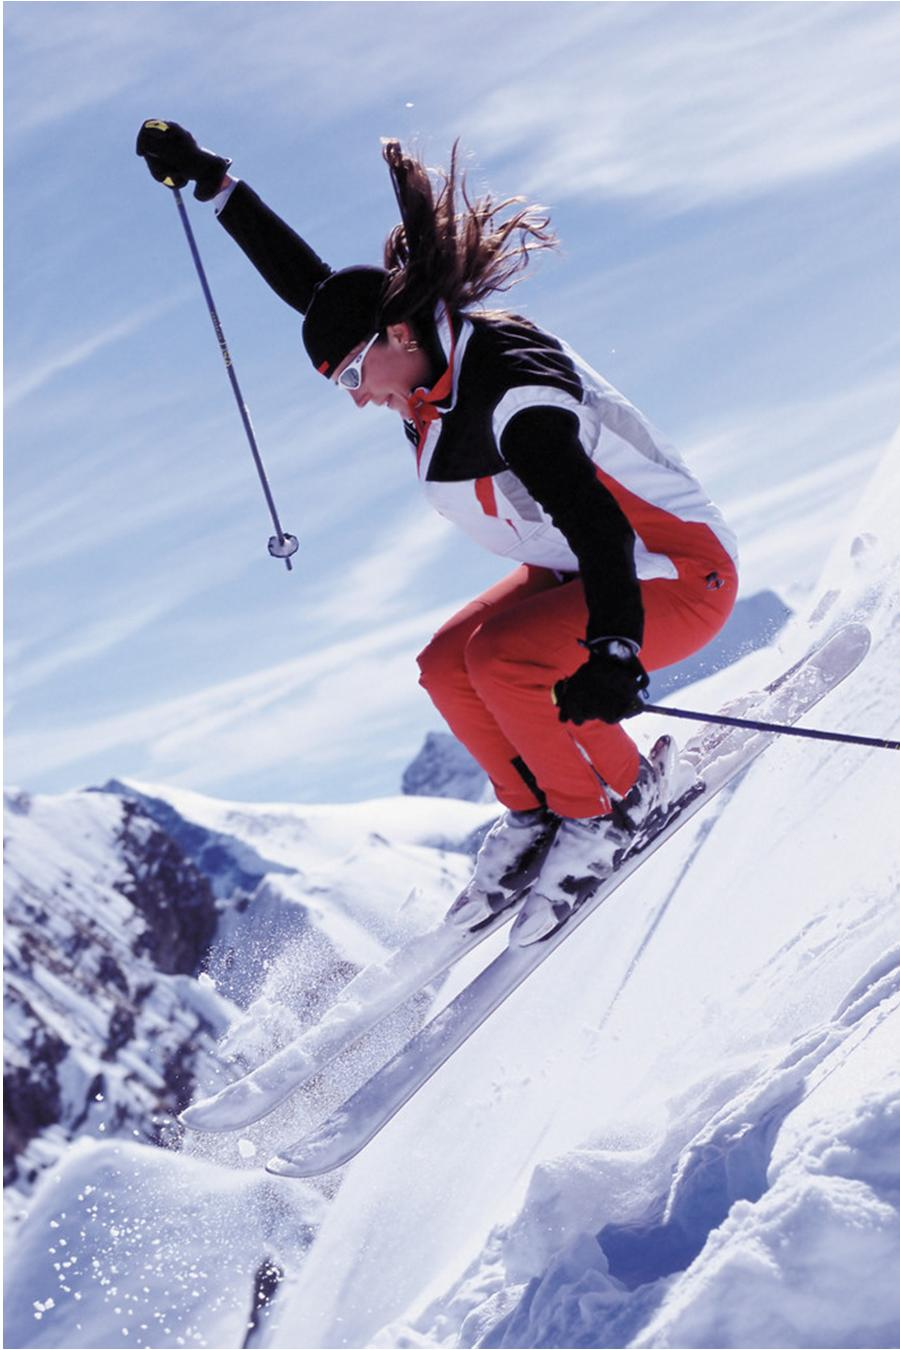 Holiday Festivities >> Insights into mentoring and relationships: Enjoy skiing ...